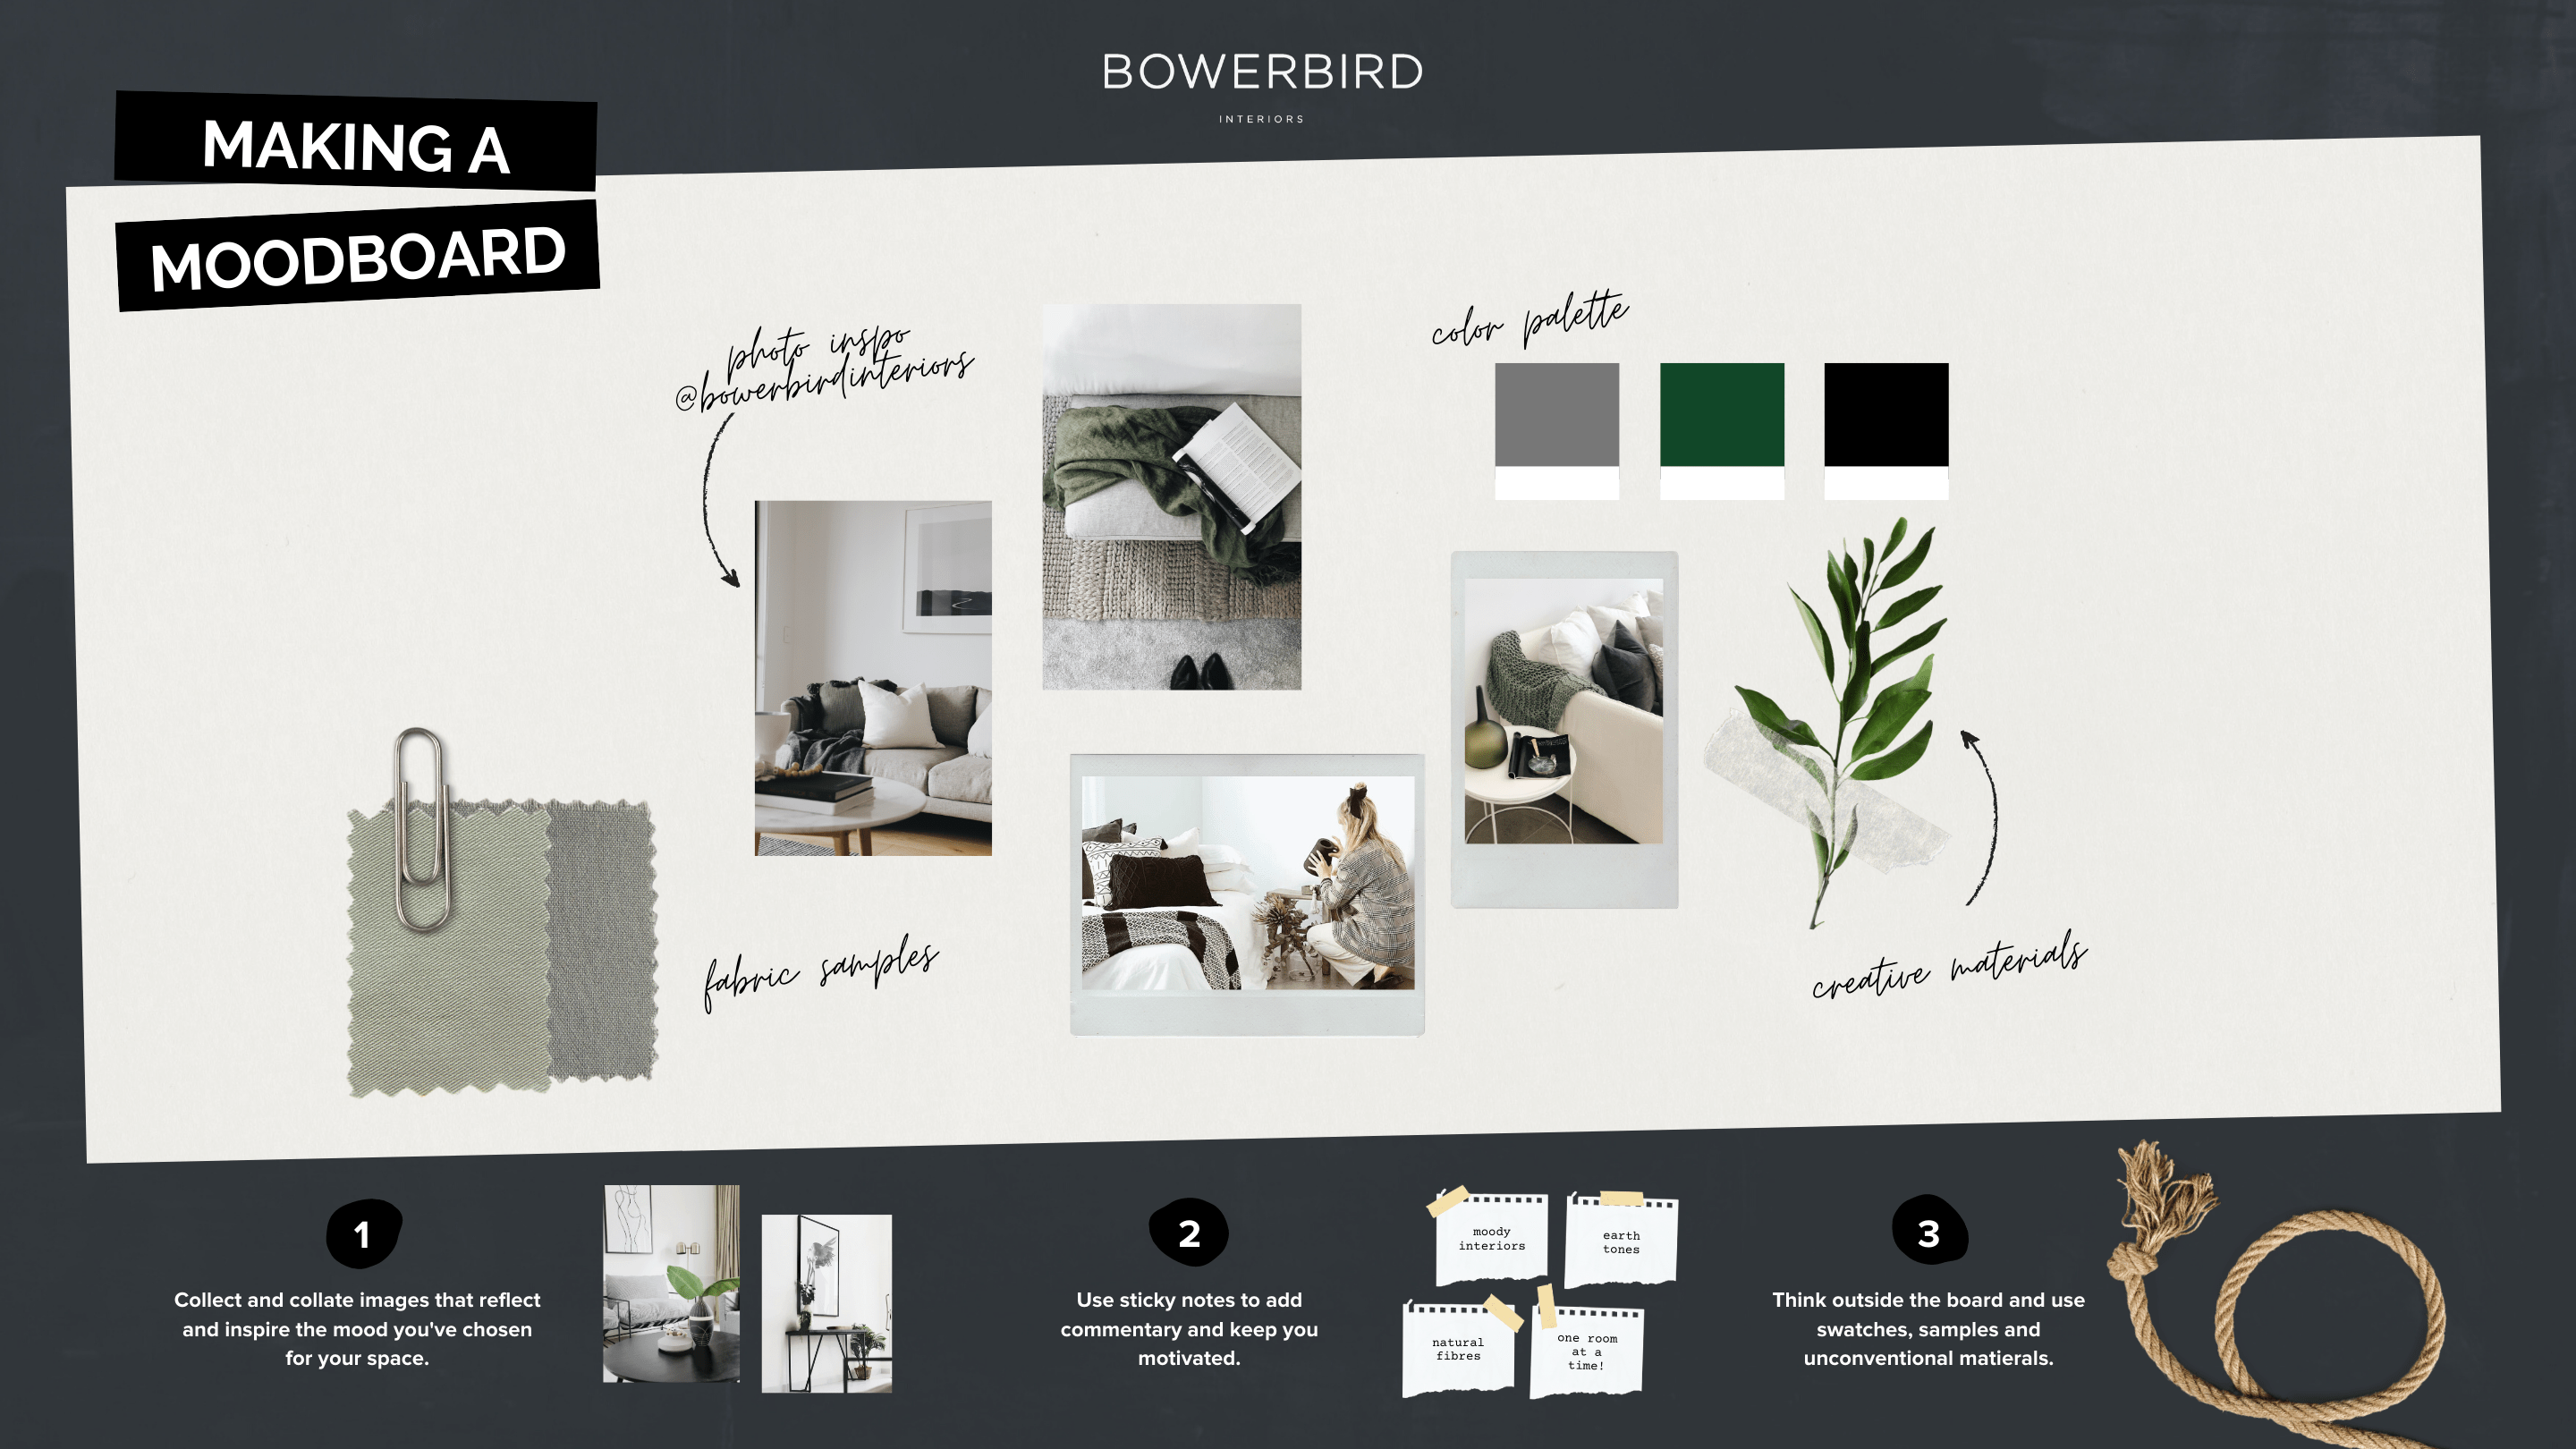 Get a sneak peek at our online interiors course | BOWERBIRD Interiors